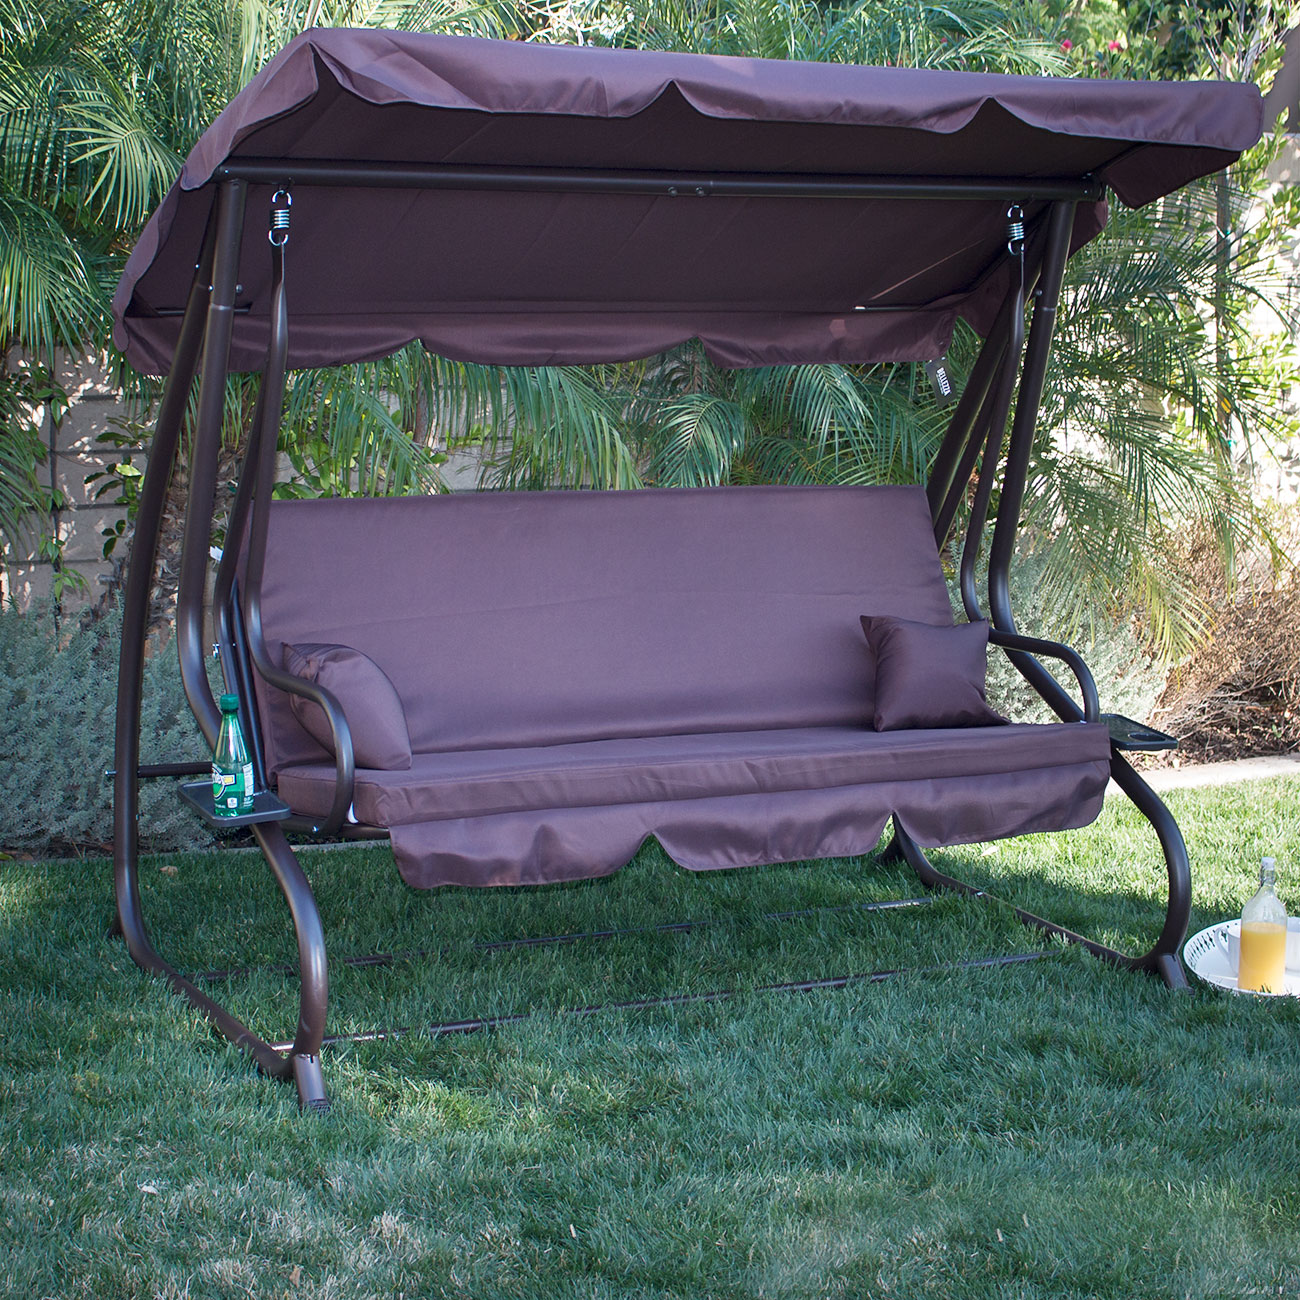 Belleze Patio Outdoor Padded Porch Swing Bed With Adjustable Tilt Canopy,  Dark Brown